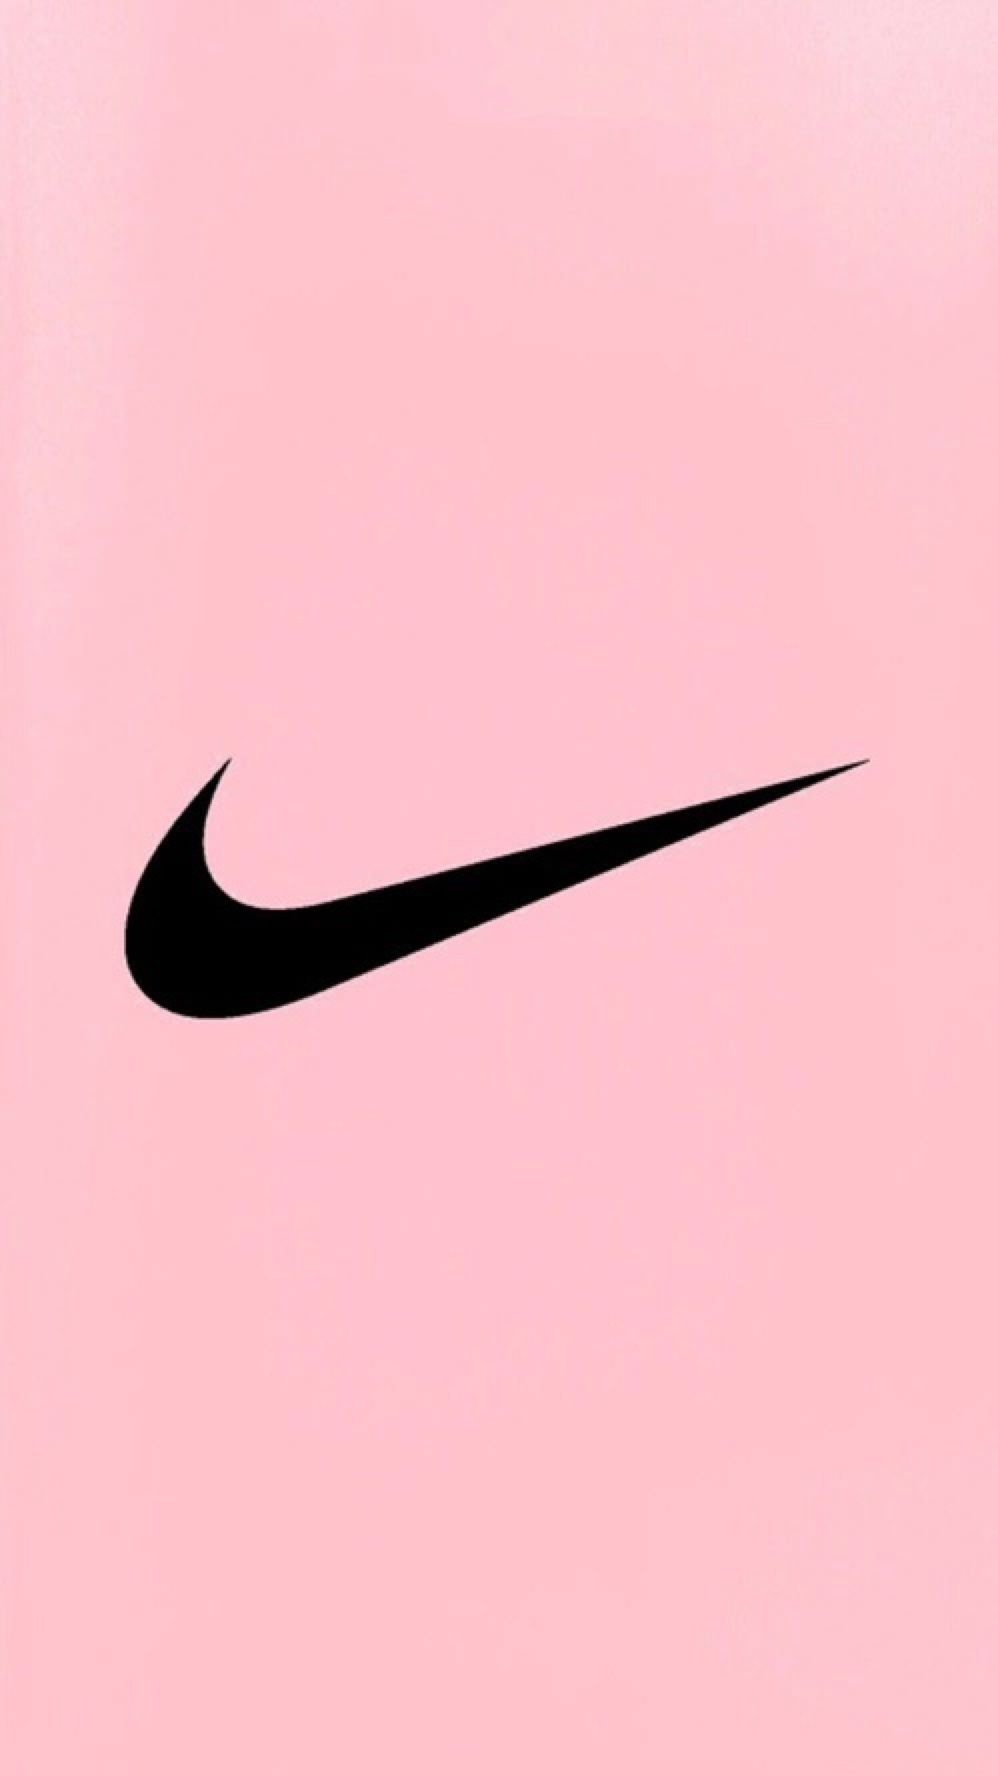 998x1776 ✨вαвуgιяℓ✨ | иιкє | Iphone wallpaper, Nike wallpaper, Pink nike ...